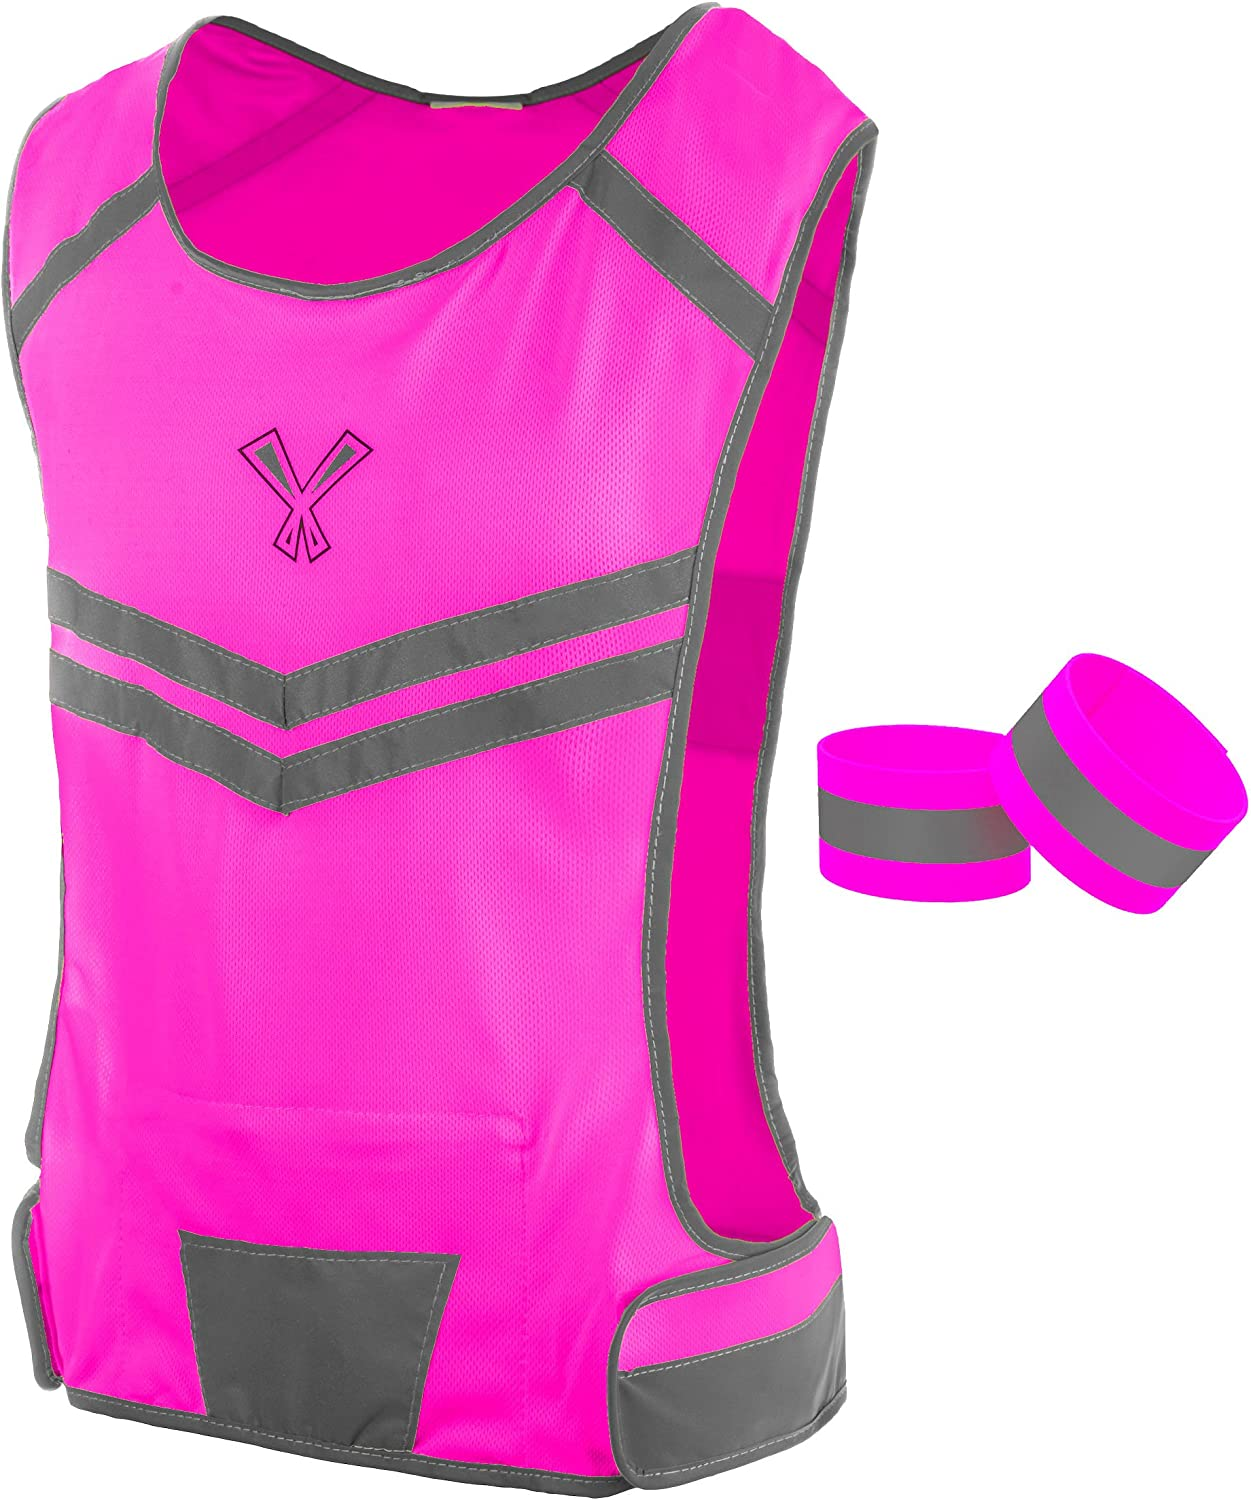 247 Viz The Reflective Vest with Inside Pocket & 2 High Visibility Running Safety Bands : Sports & Outdoors